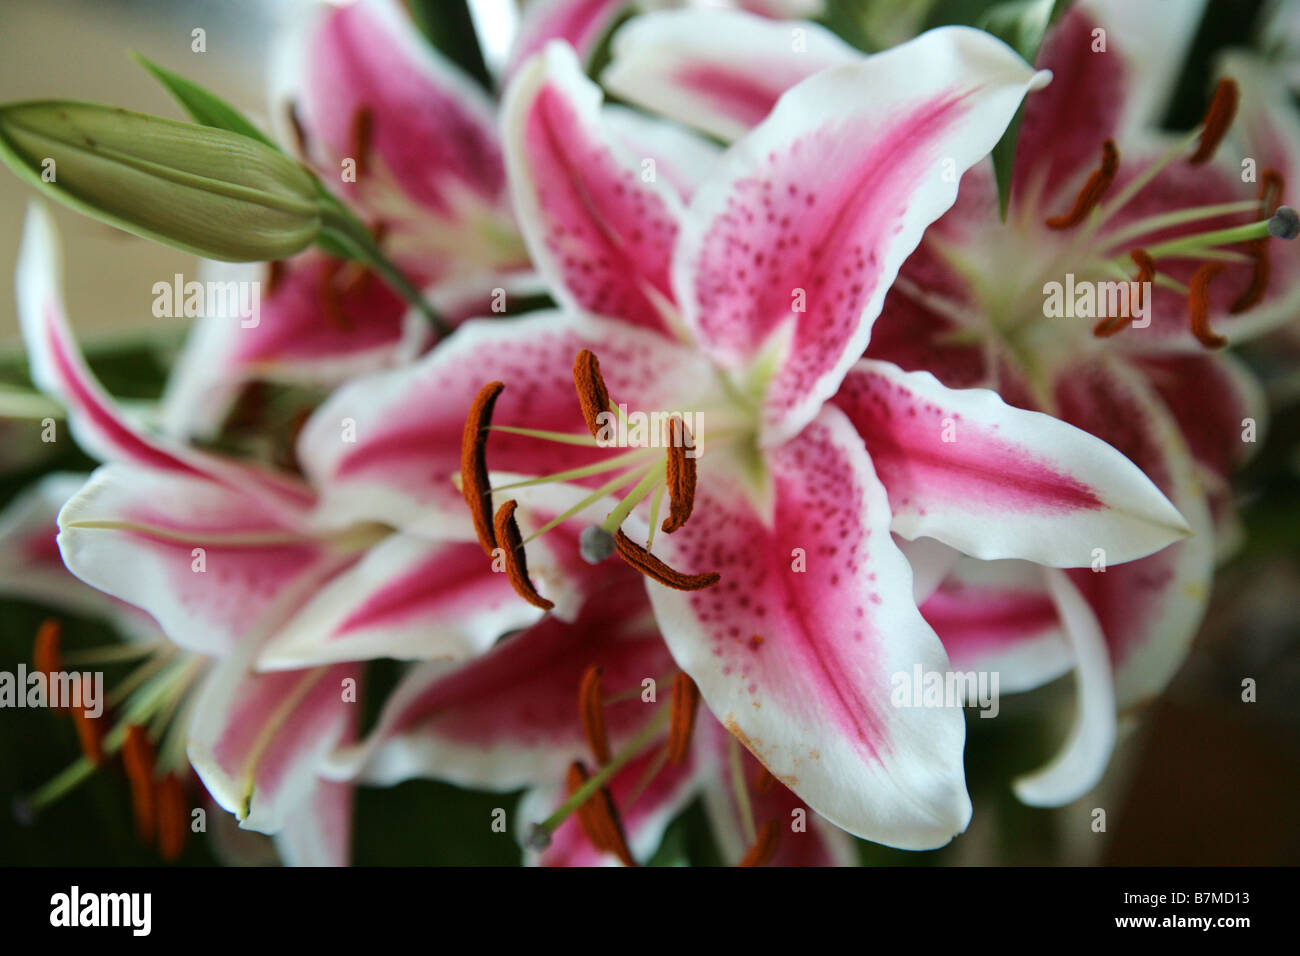 Rare tropical flowers stock photos rare tropical flowers stock exotic flower seen at an arrangement made of tropical colourful flowers stock image mightylinksfo